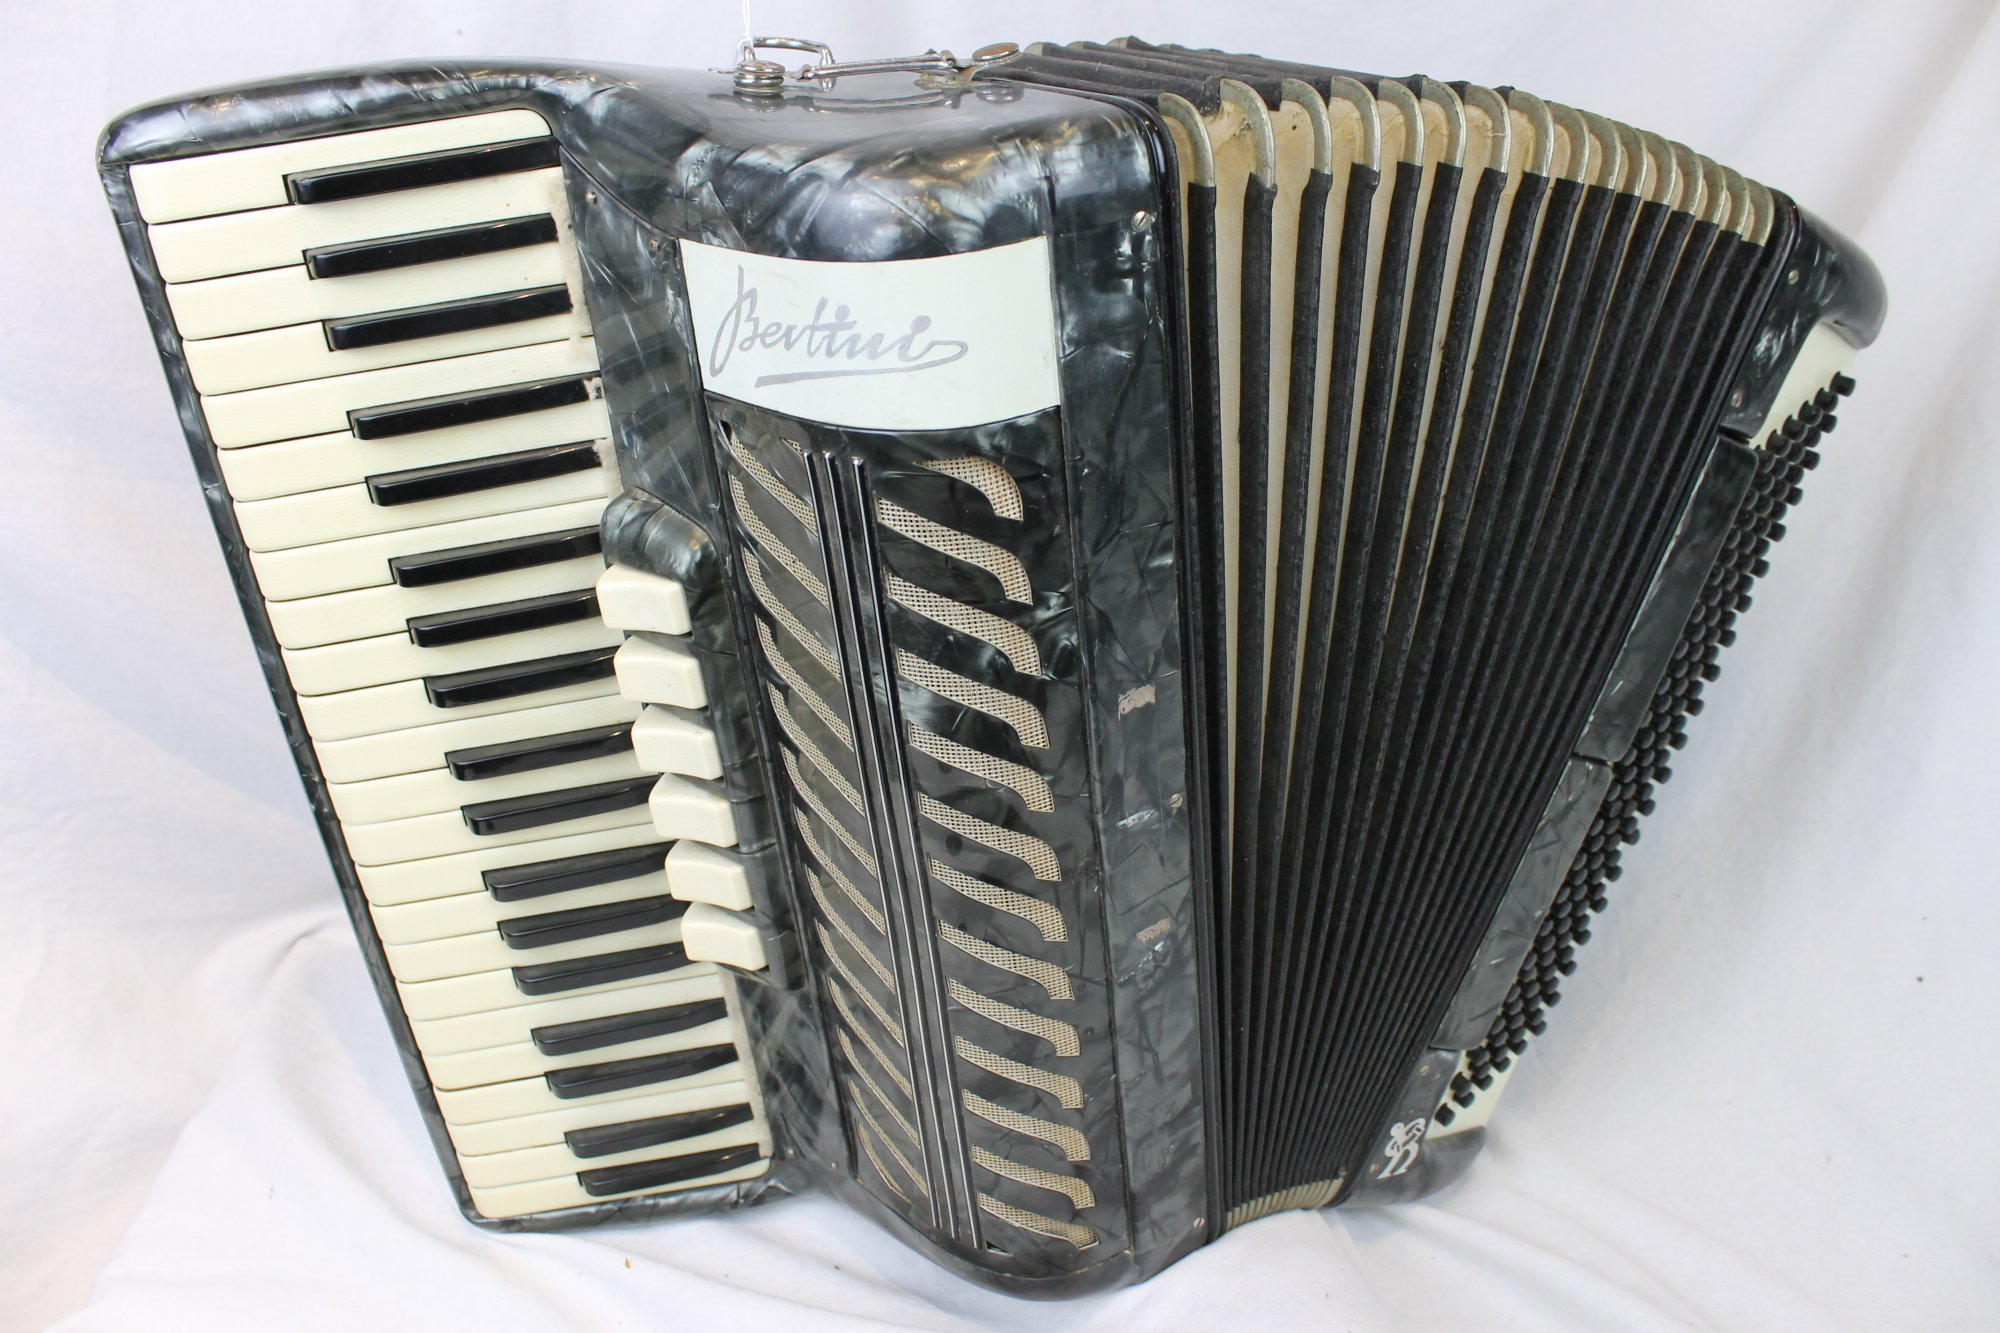 3603 - Slate Bertini Verona Piano Accordion LMMH 41 120